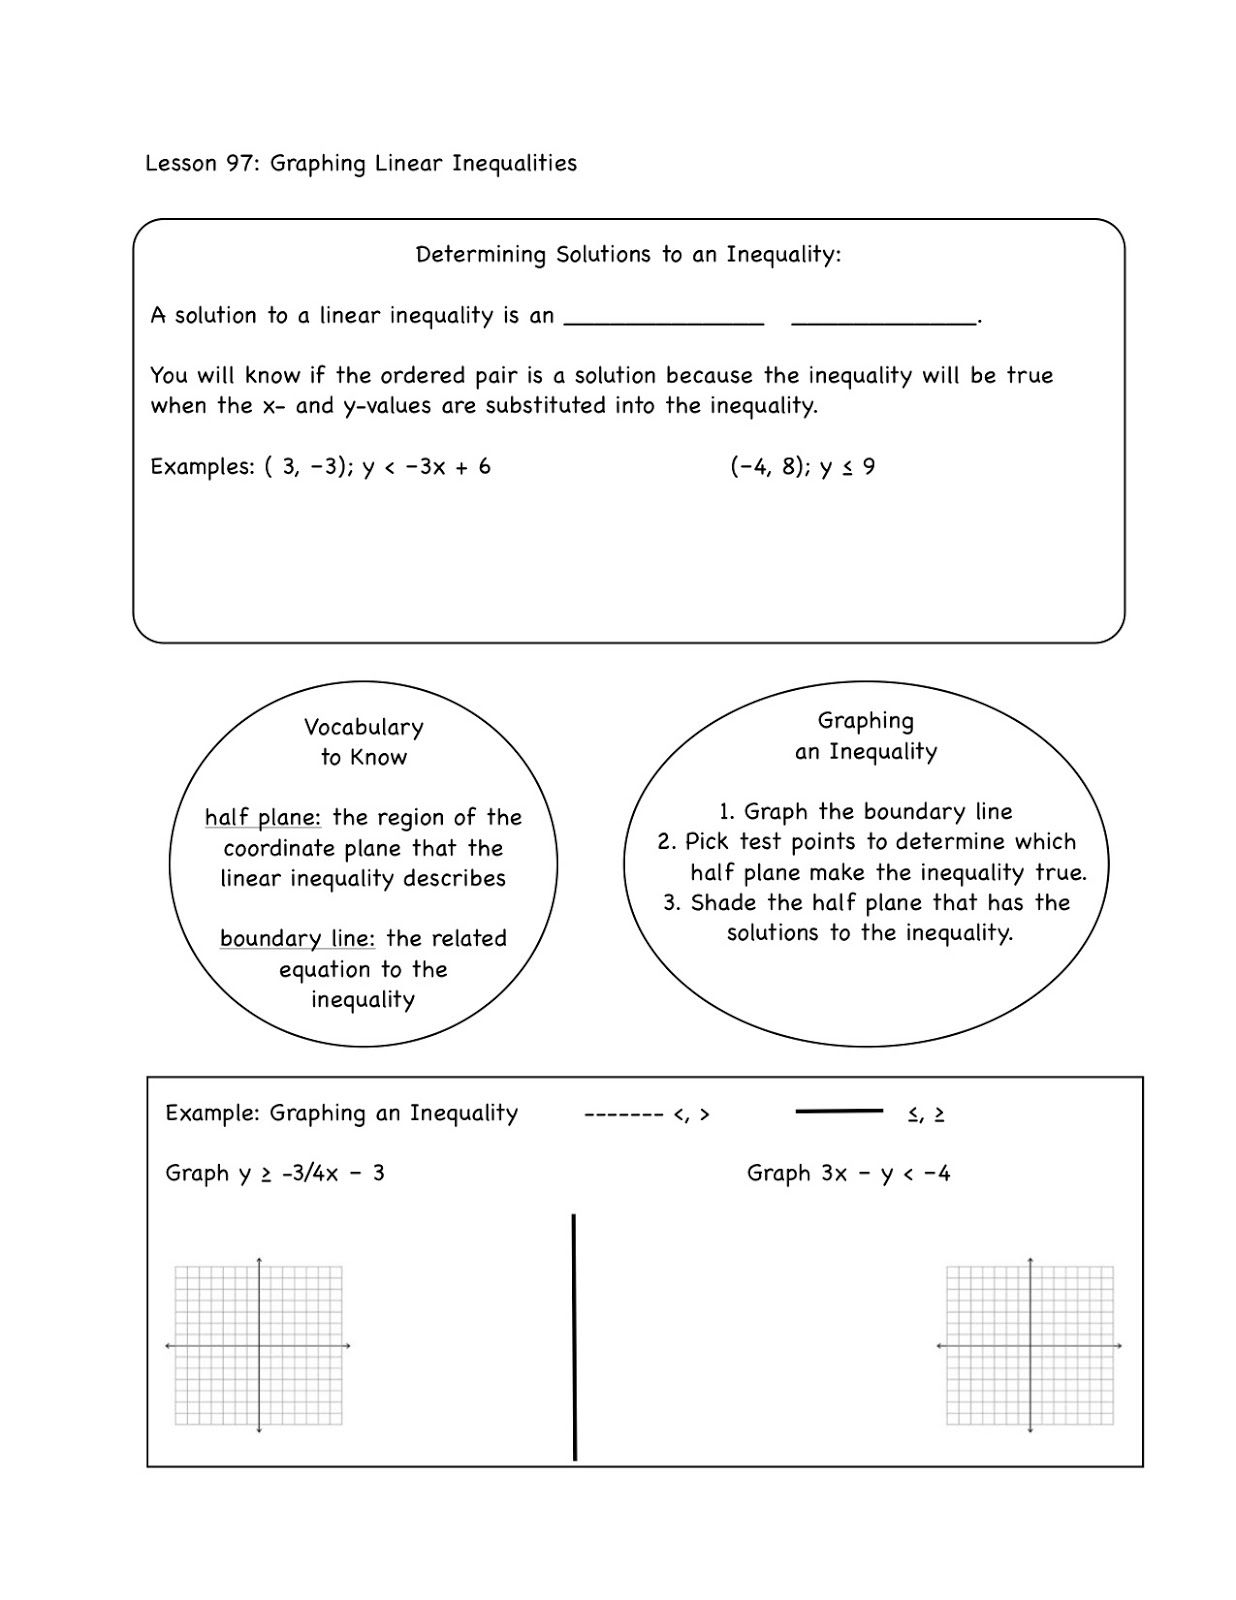 Learning New Math Tricks Linear Inequalities Graphing Linear Inequalities Algebra Help Linear Inequalities